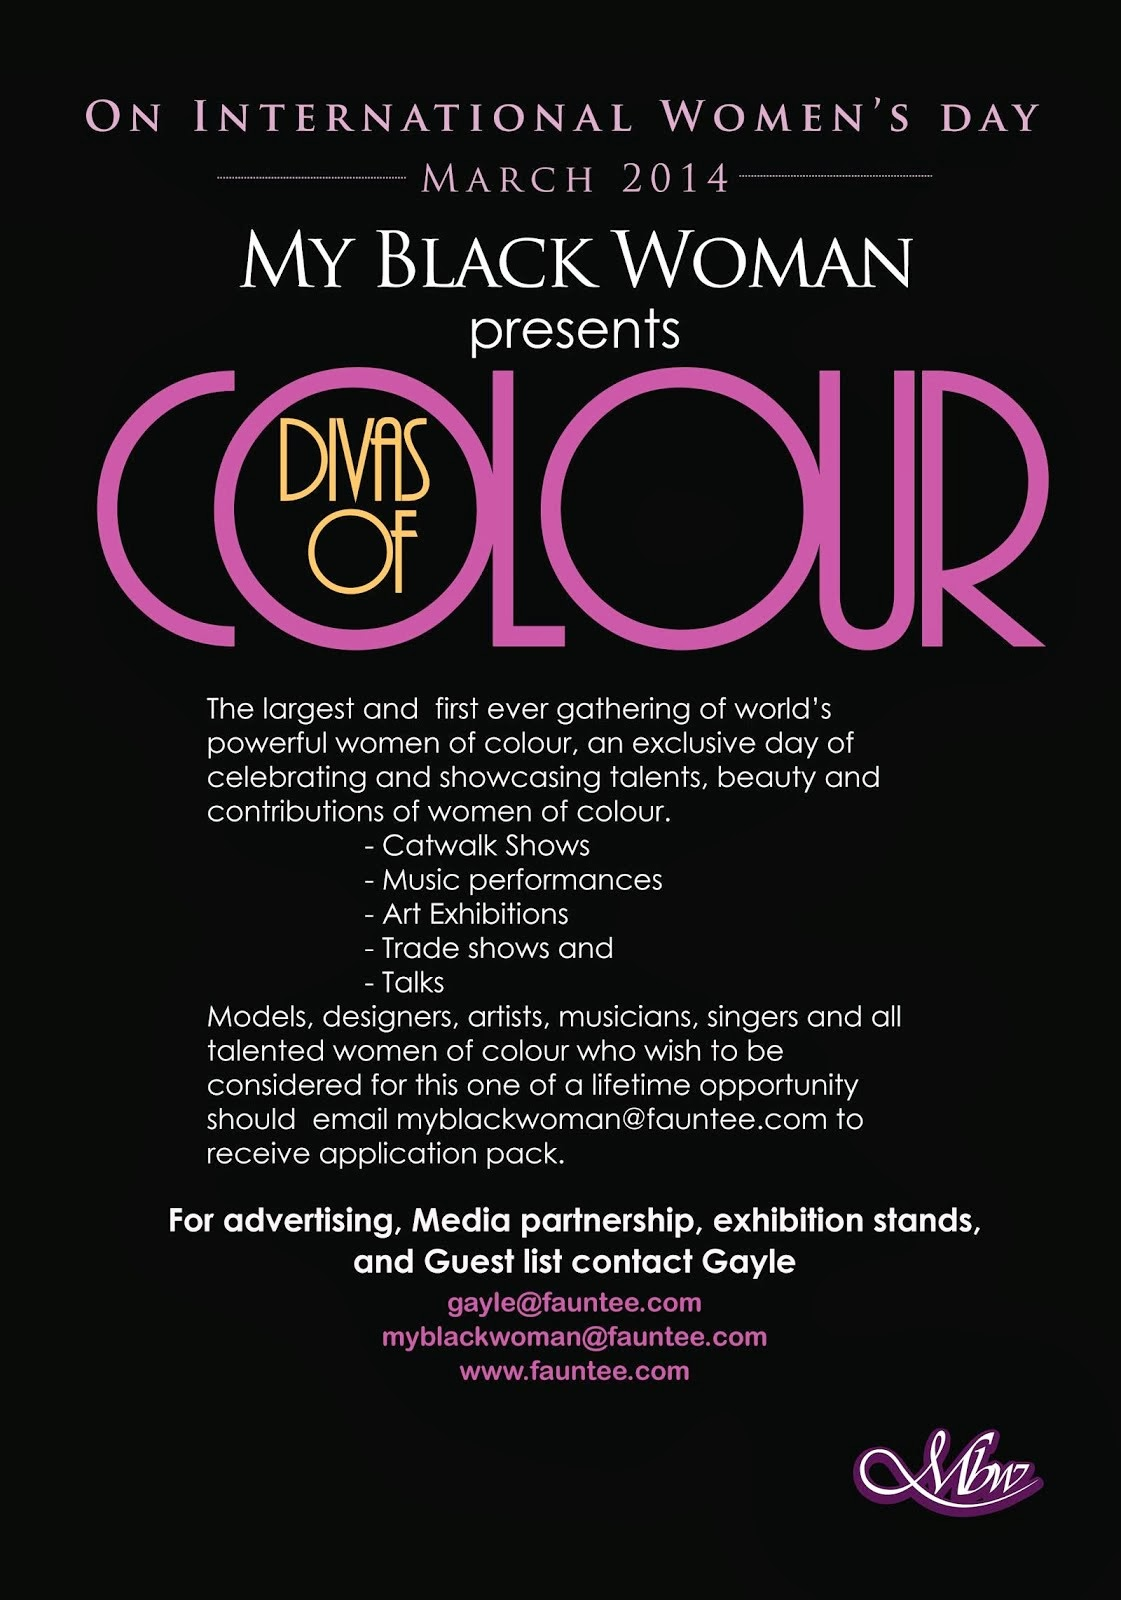 My Black Woman presents - Divas Of Colour